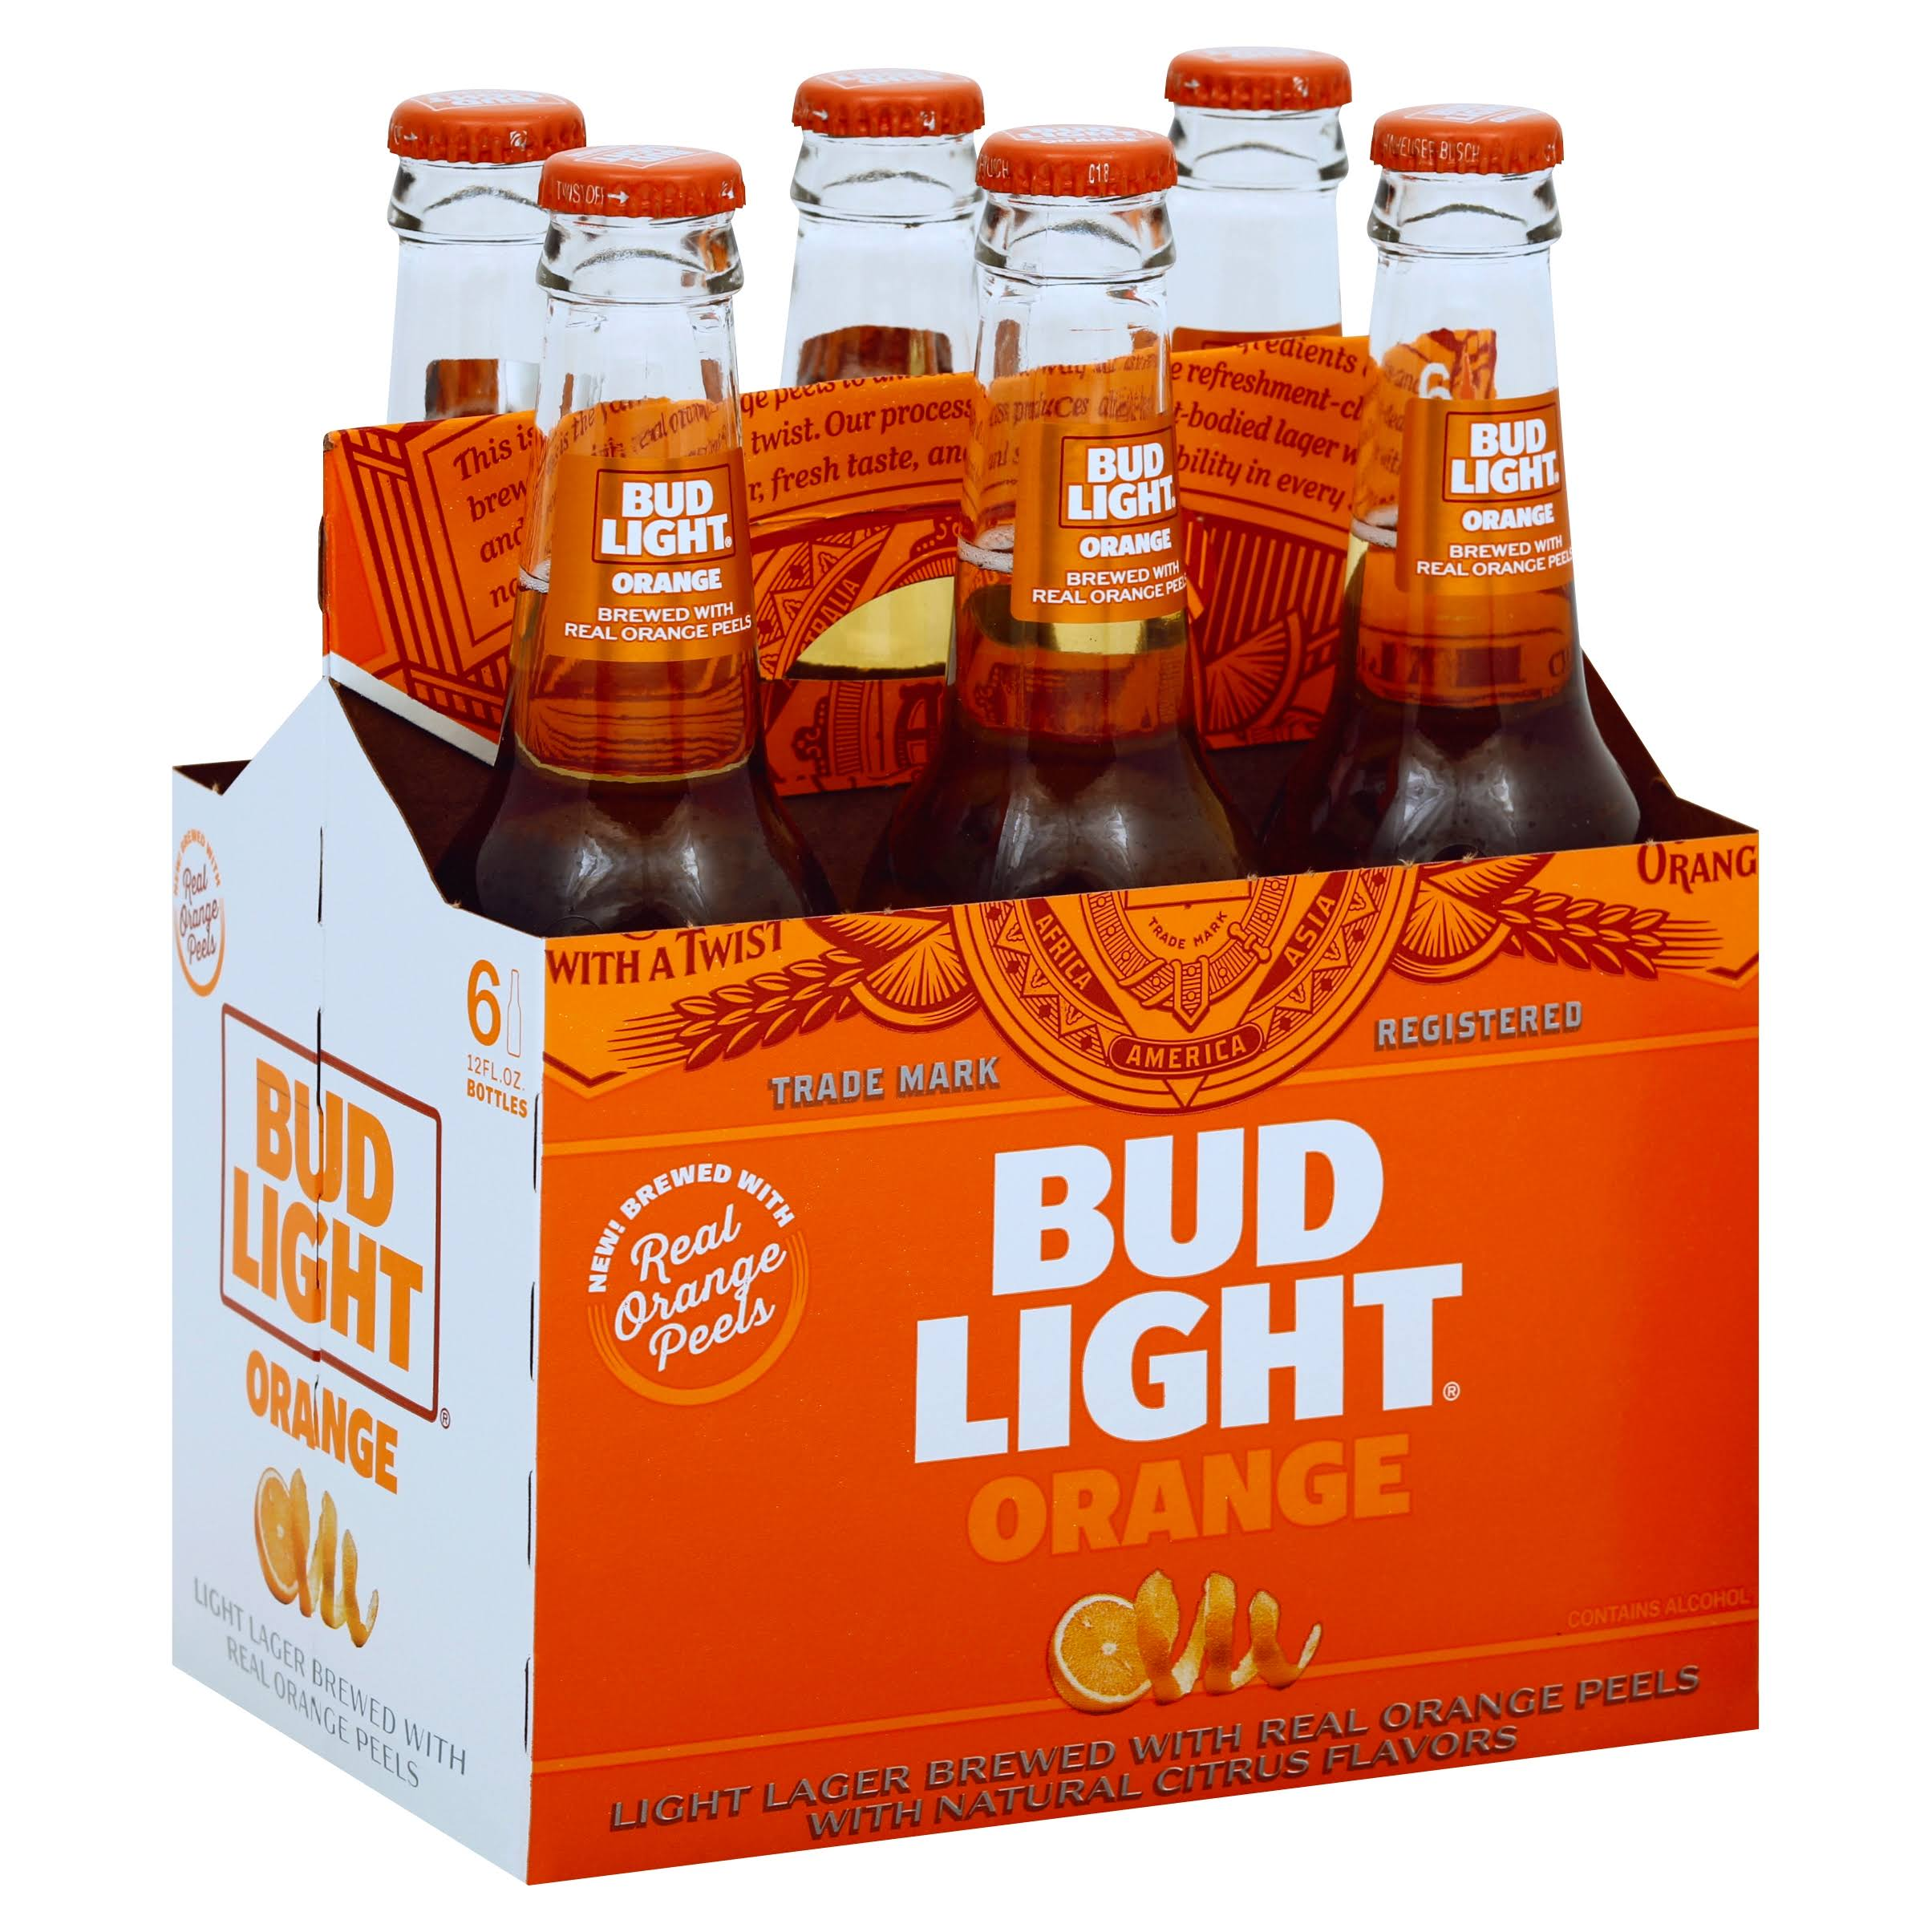 Bud Light Beer, Orange - 6 pack, 12 fl oz bottles